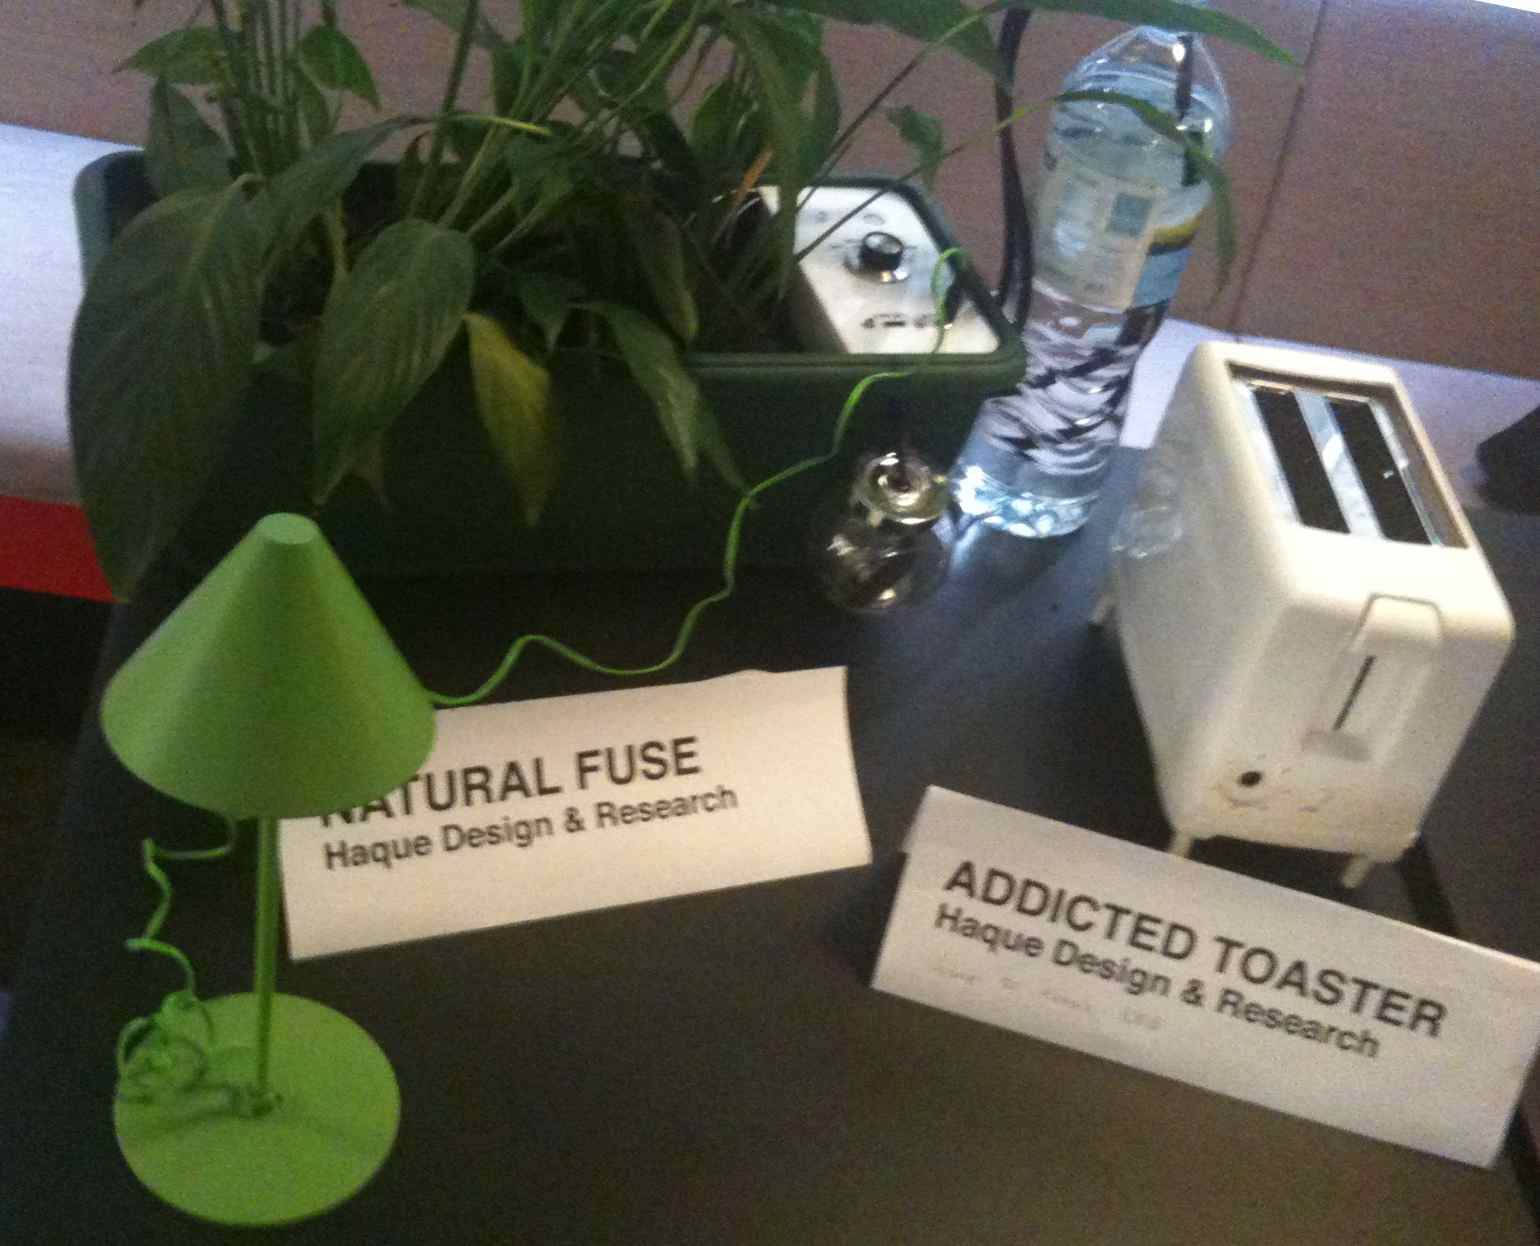 Natural Fuse & Addicted Toaster